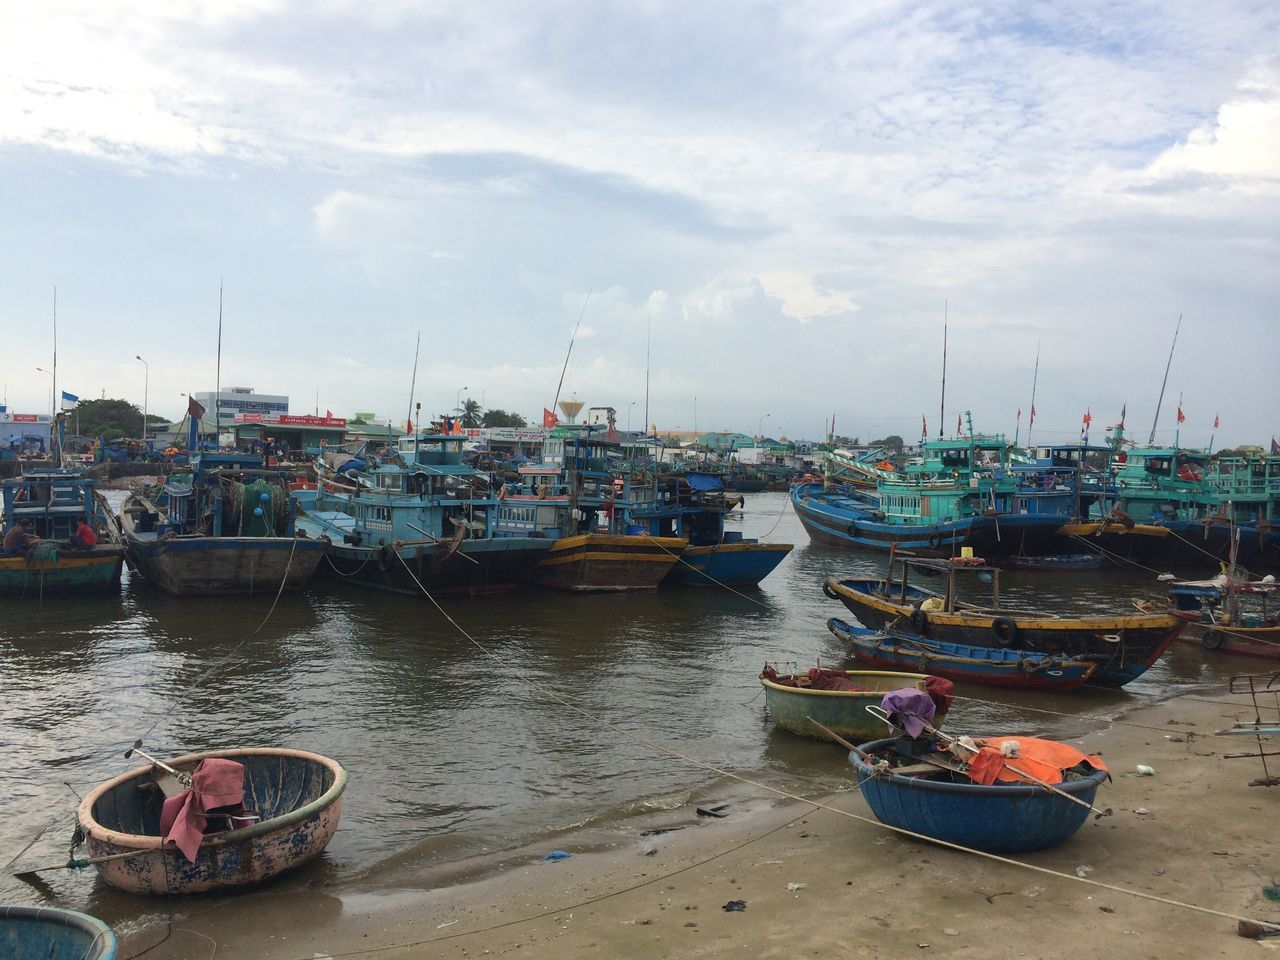 Boats Fishing Boats Fishing Village Phan Thiet Vietnam Traveling